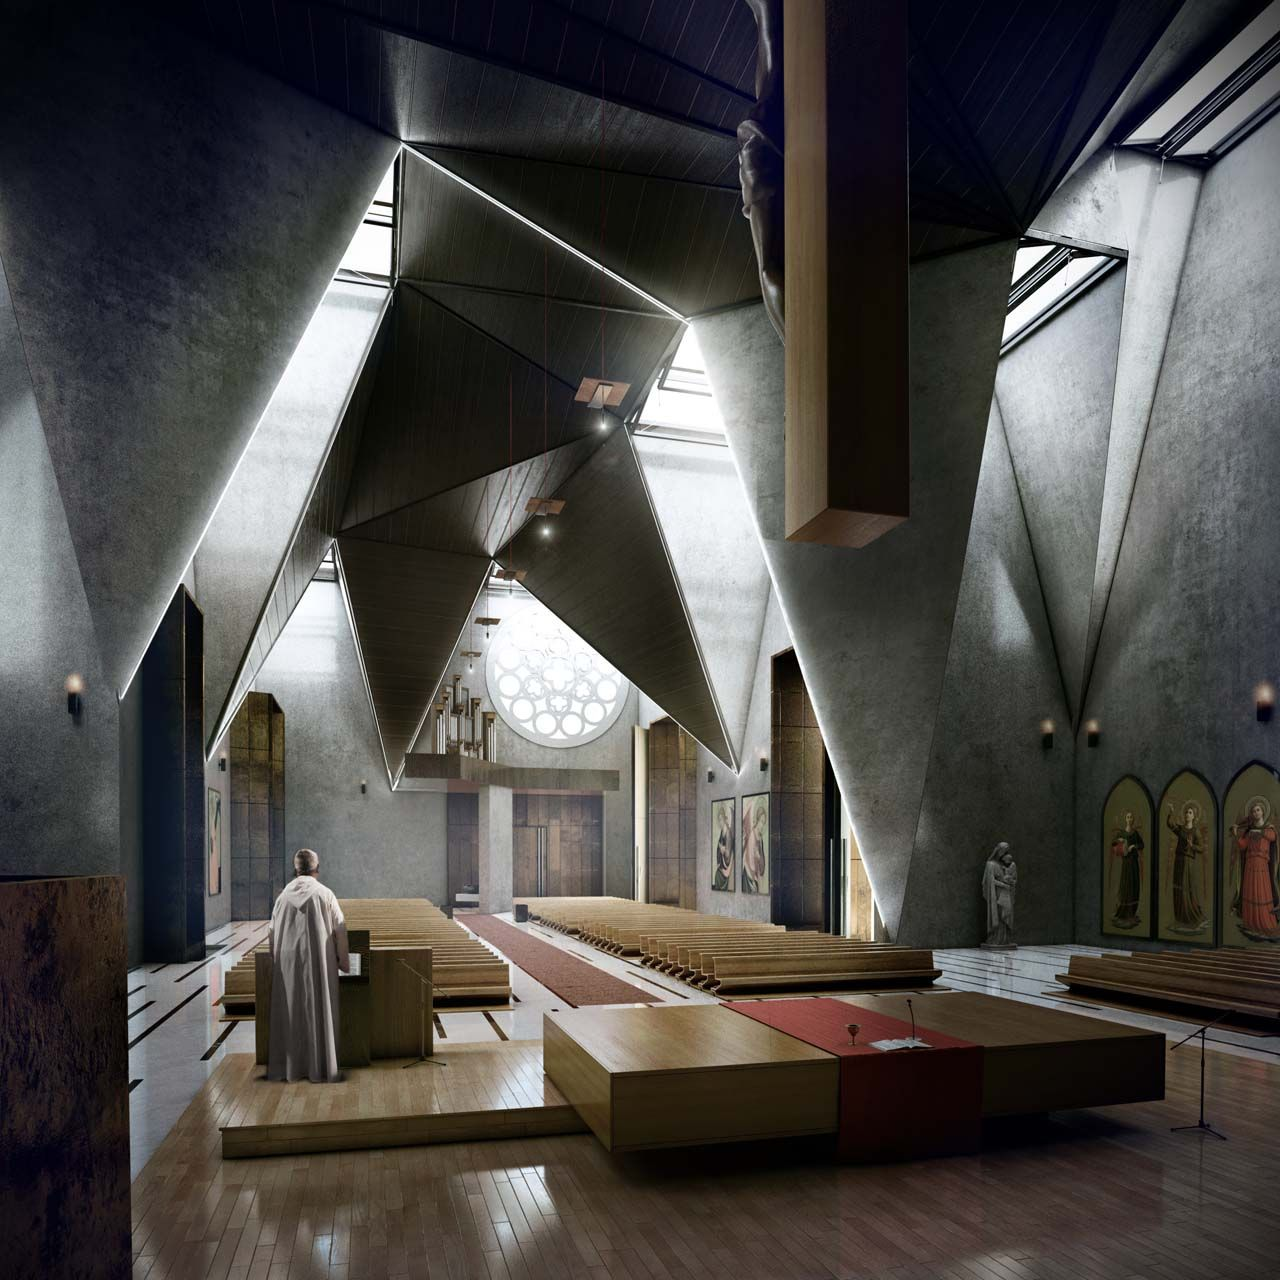 The Haiti Cathedral by Urban Office Architecture. #morfae   #urbanofficearchitecture   #architecture   #cathedraldesign